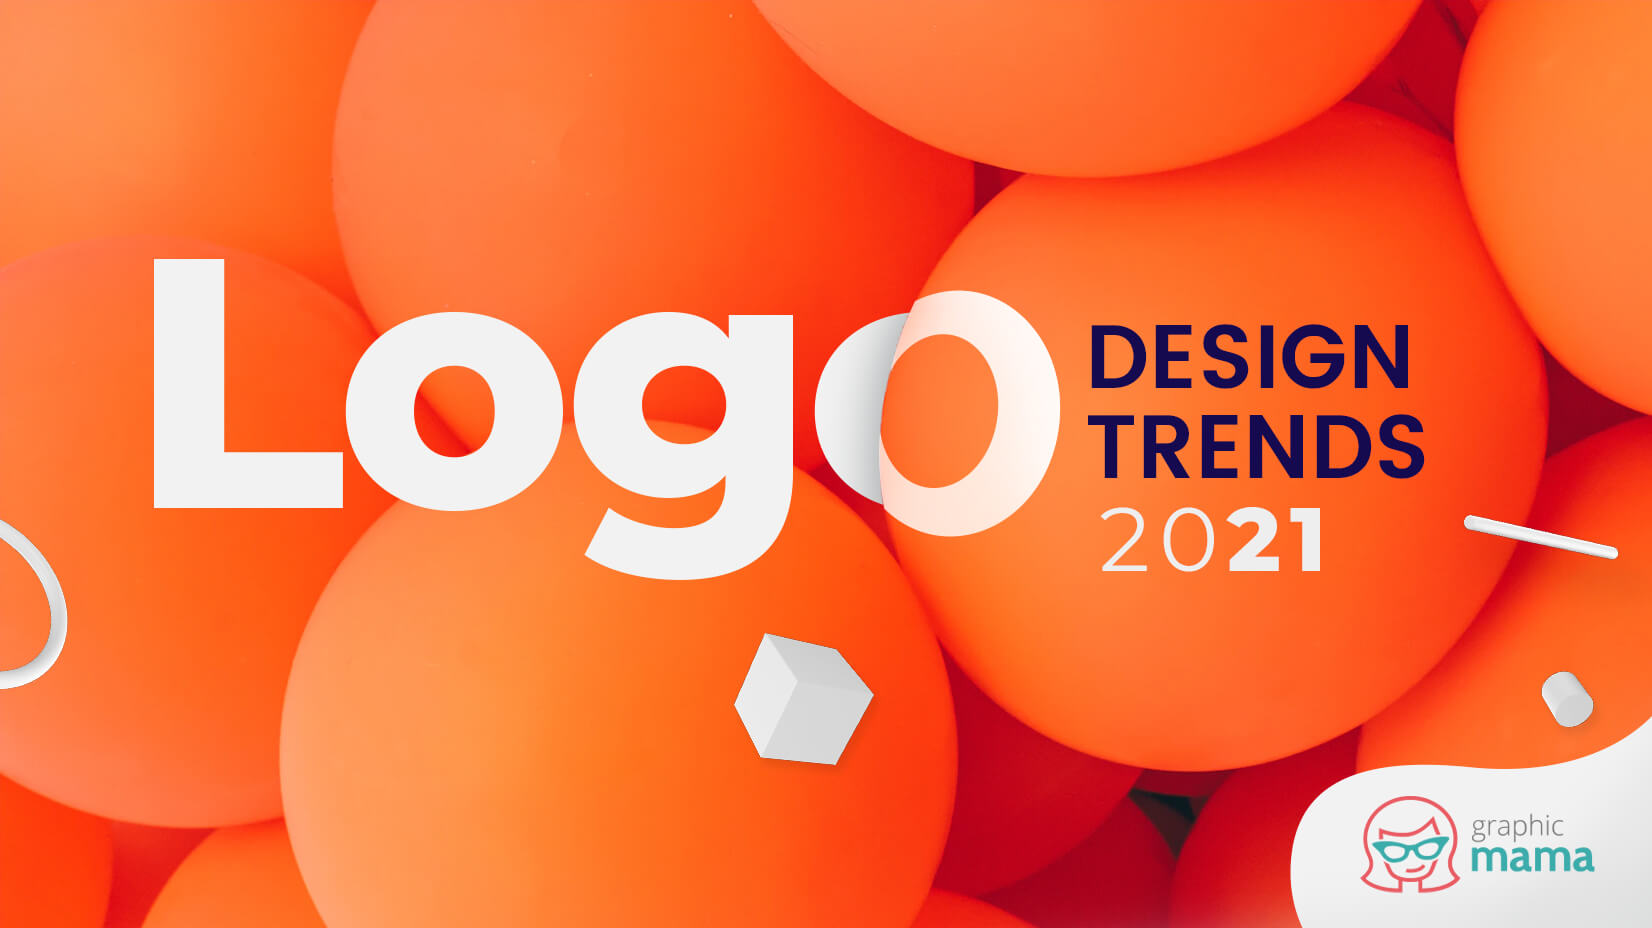 Logo Design Trends in 2021